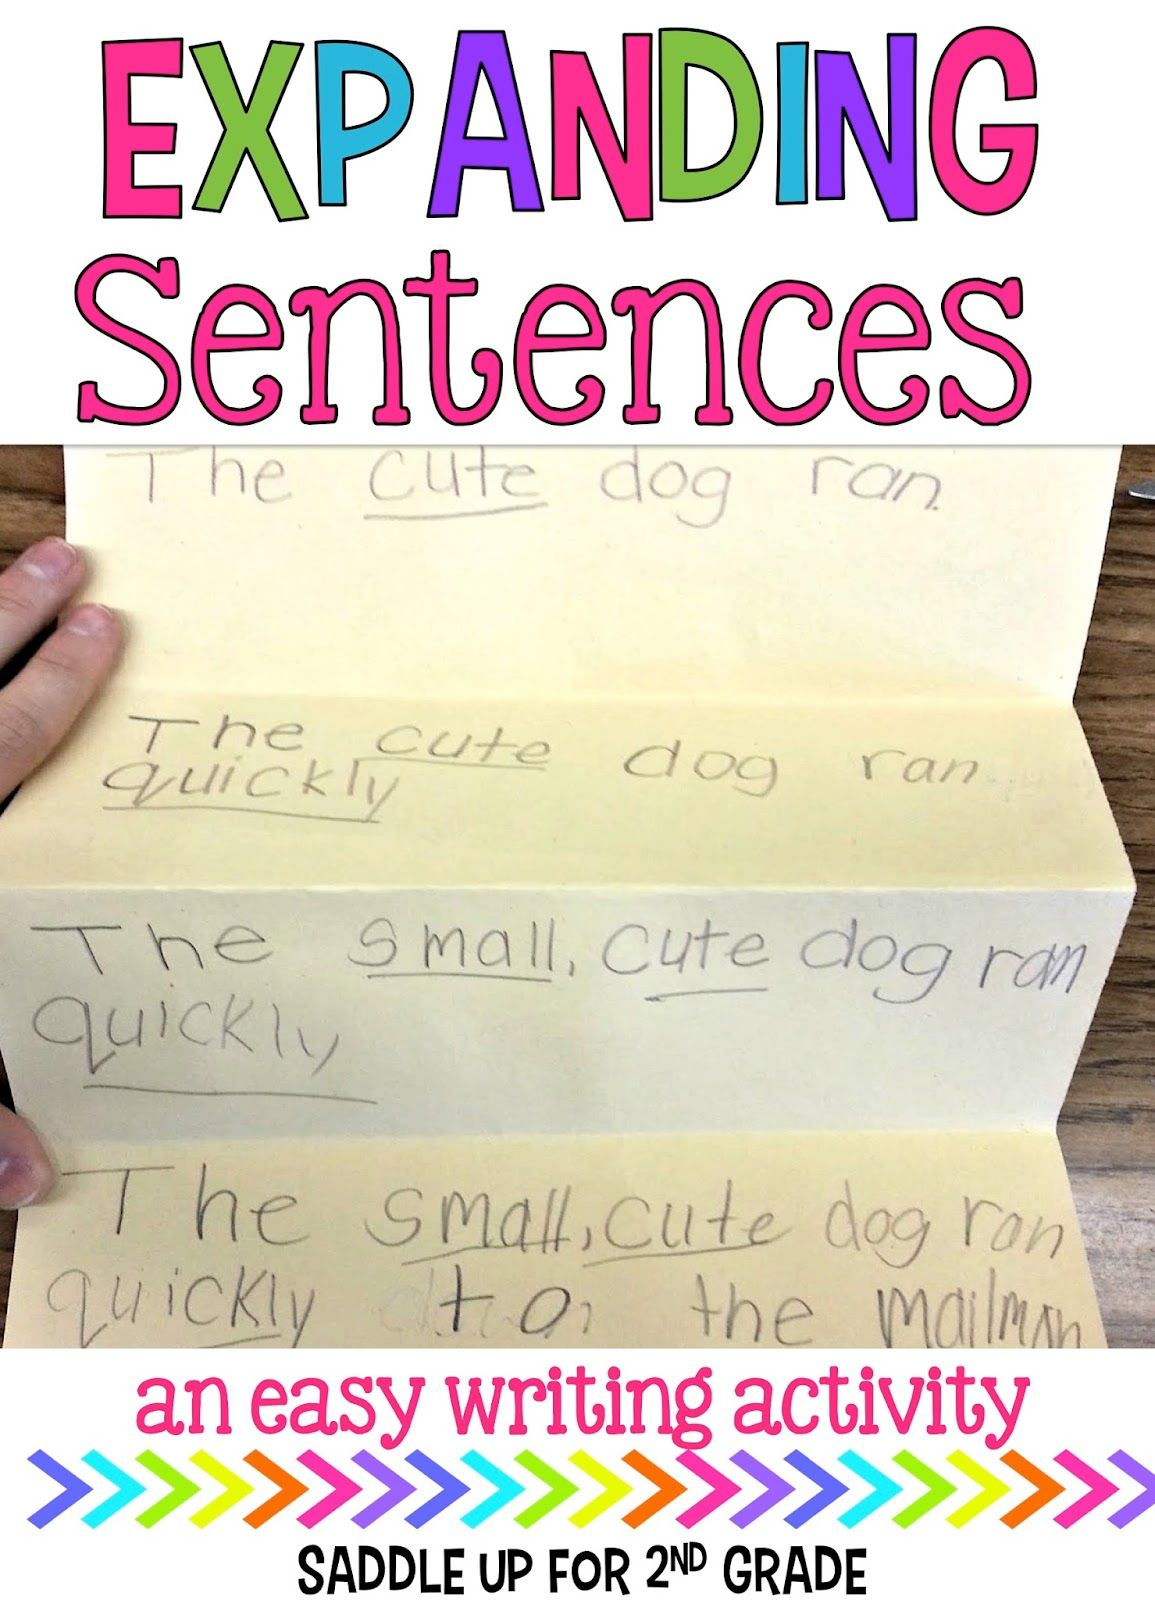 2nd grade paragraph examples